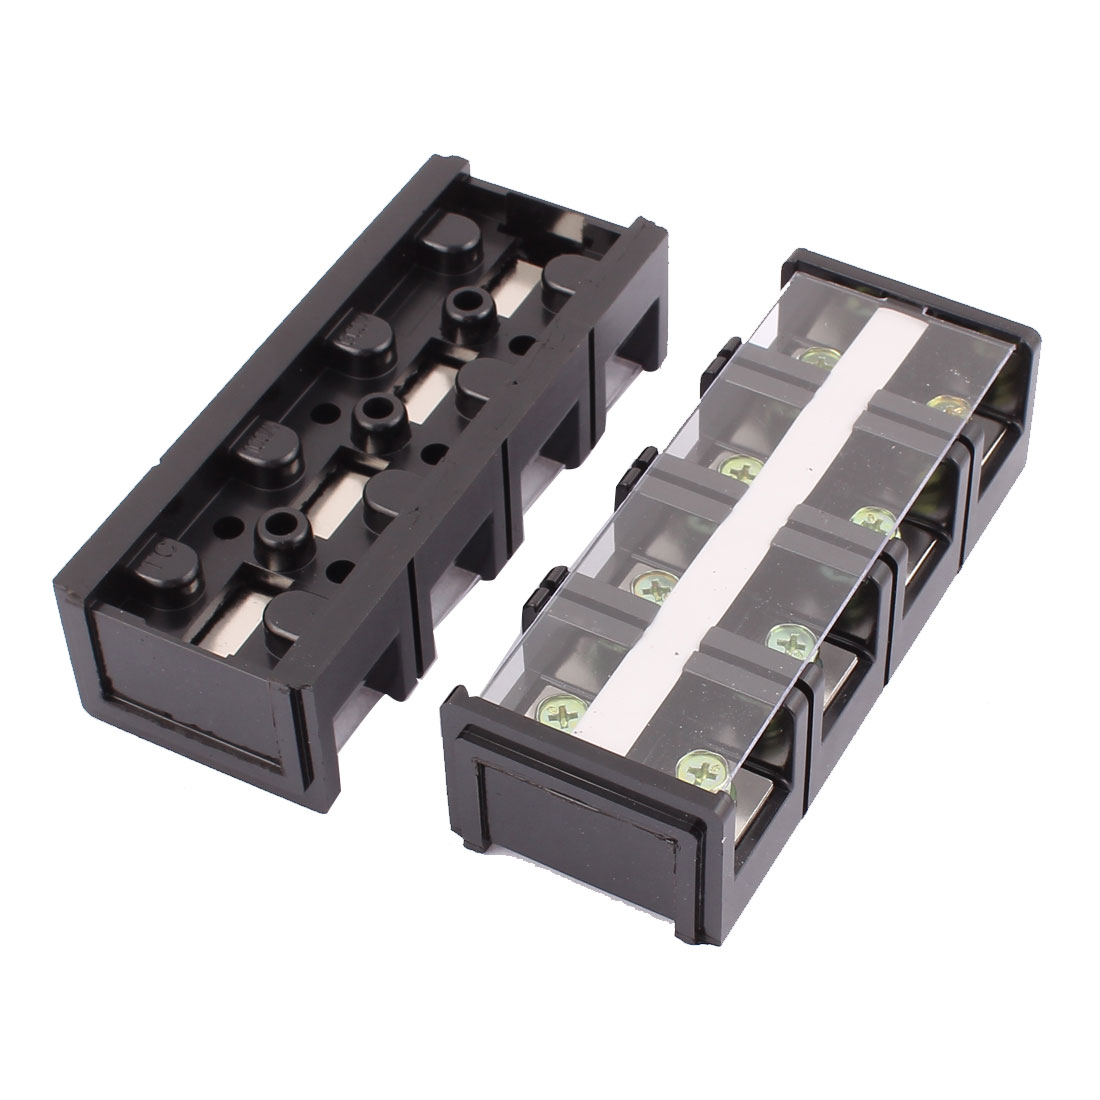 2pcs 600V 100A 4 Position Double Row Large Current Terminal Barrier Blocks Connector TC1004